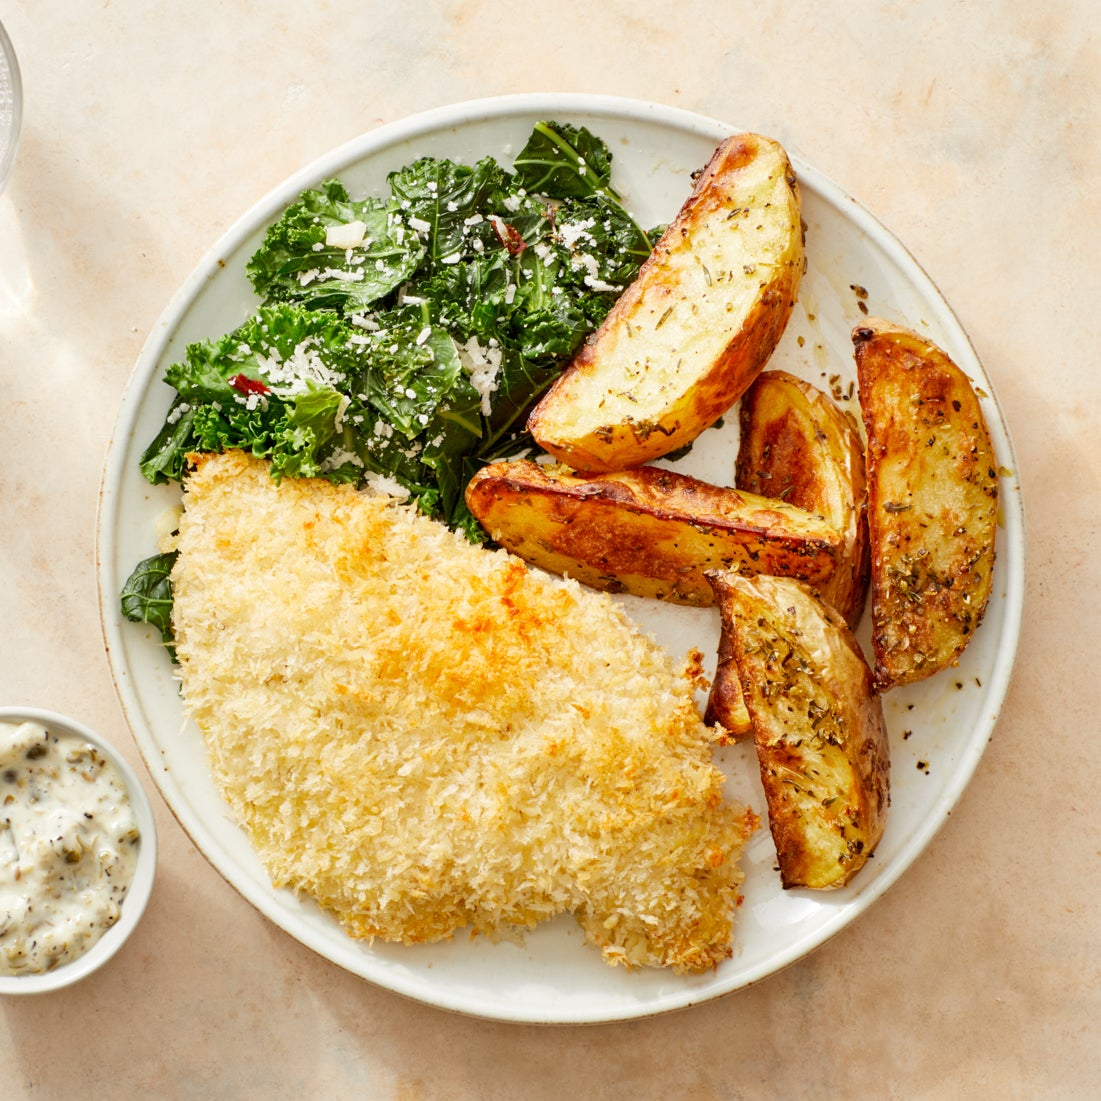 Crispy Baked Chicken with Sautéed Kale, Roasted Potatoes, & Caper Mayo